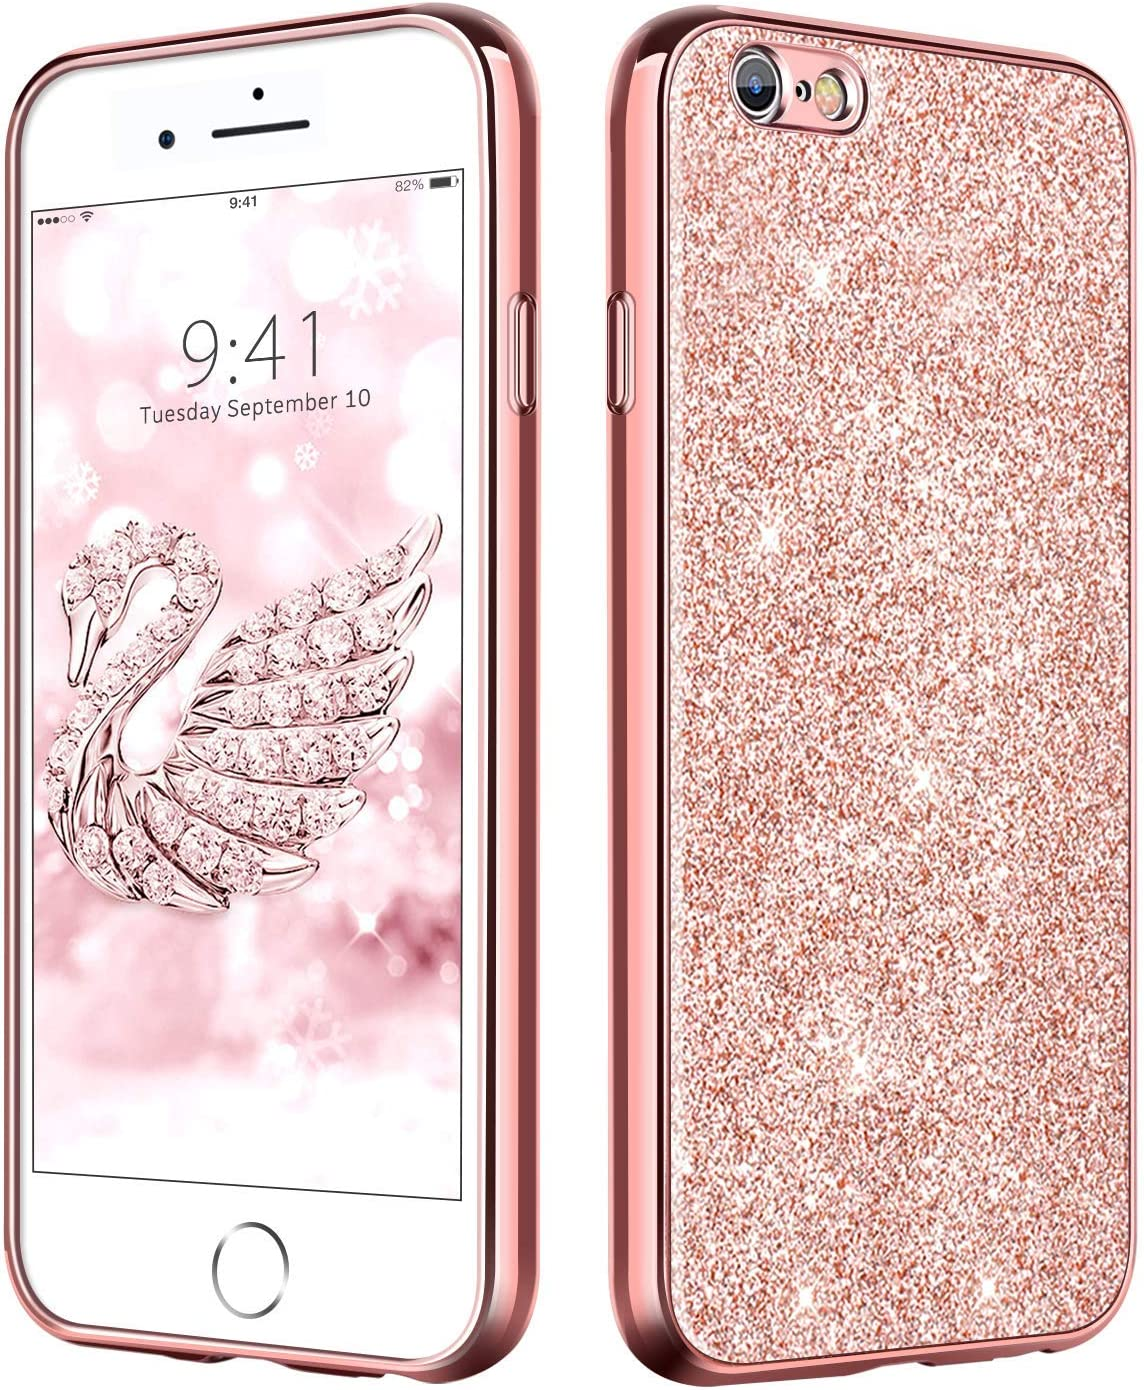 DUEDUE iPhone 6 Case Bling,iPhone 6S Case, Slim Hybrid Hard PC Cover Shockproof Non-Slip,Glitter Full Body Protective Phone Cover Case for iPhone 6/iPhone 6S for Women/Girls,Rose Gold